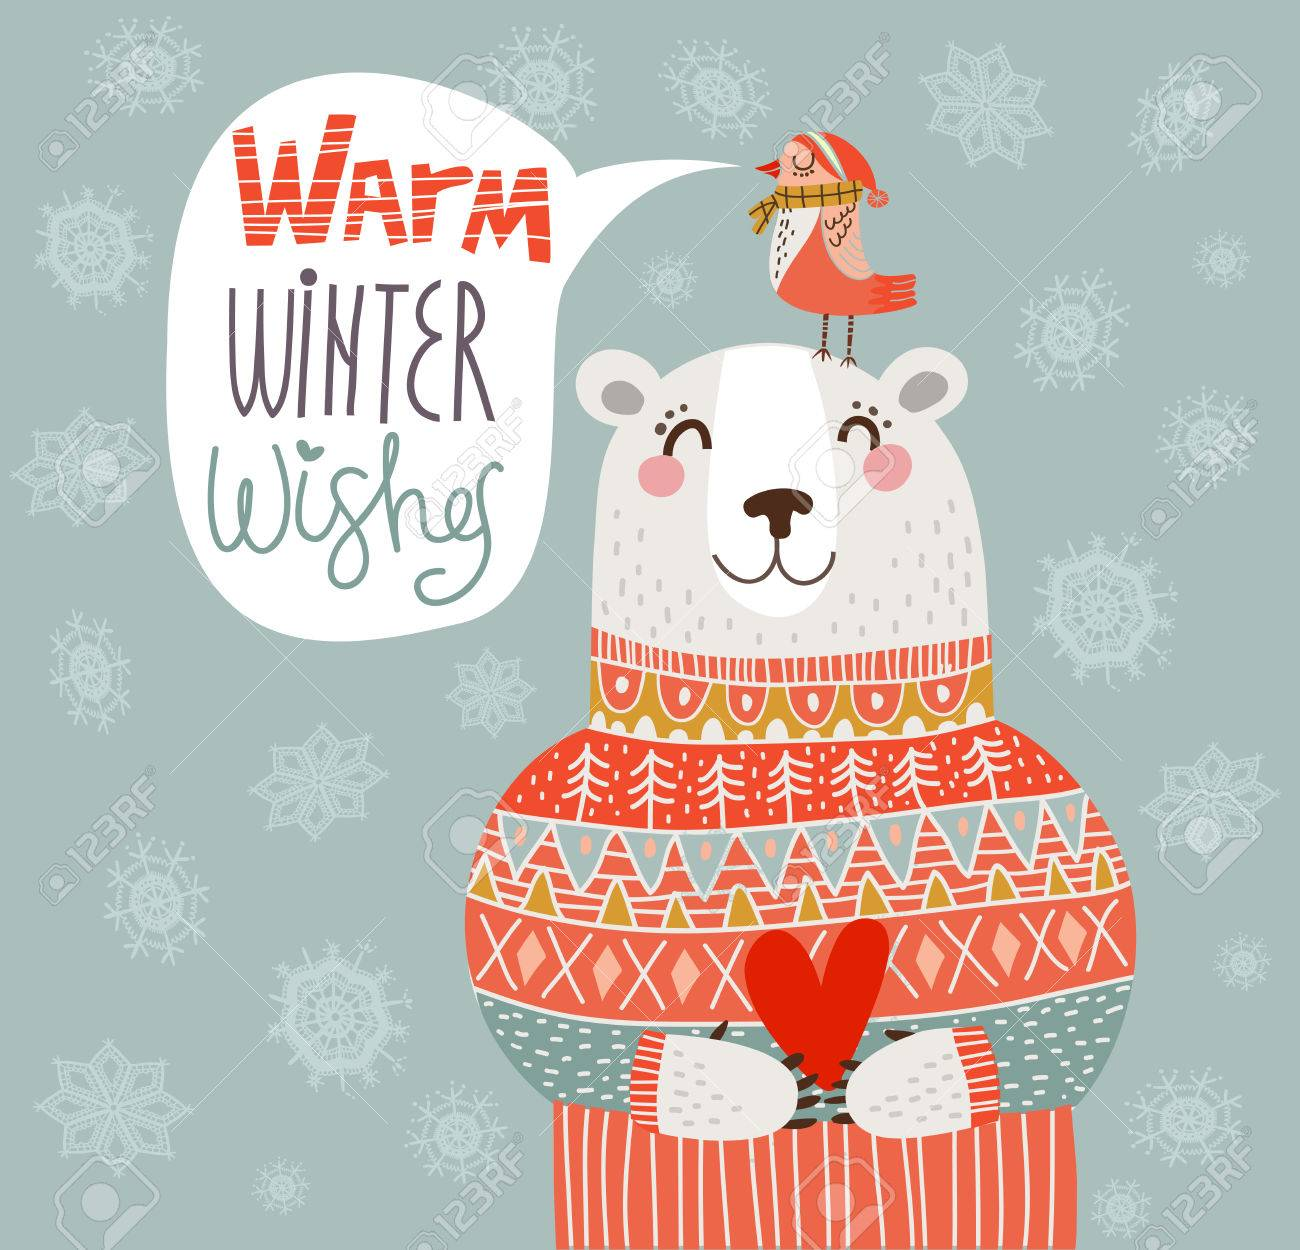 Warm Winter Wishes Card In Vector Royalty Free Cliparts Vectors And Stock Illustration Image 32623573